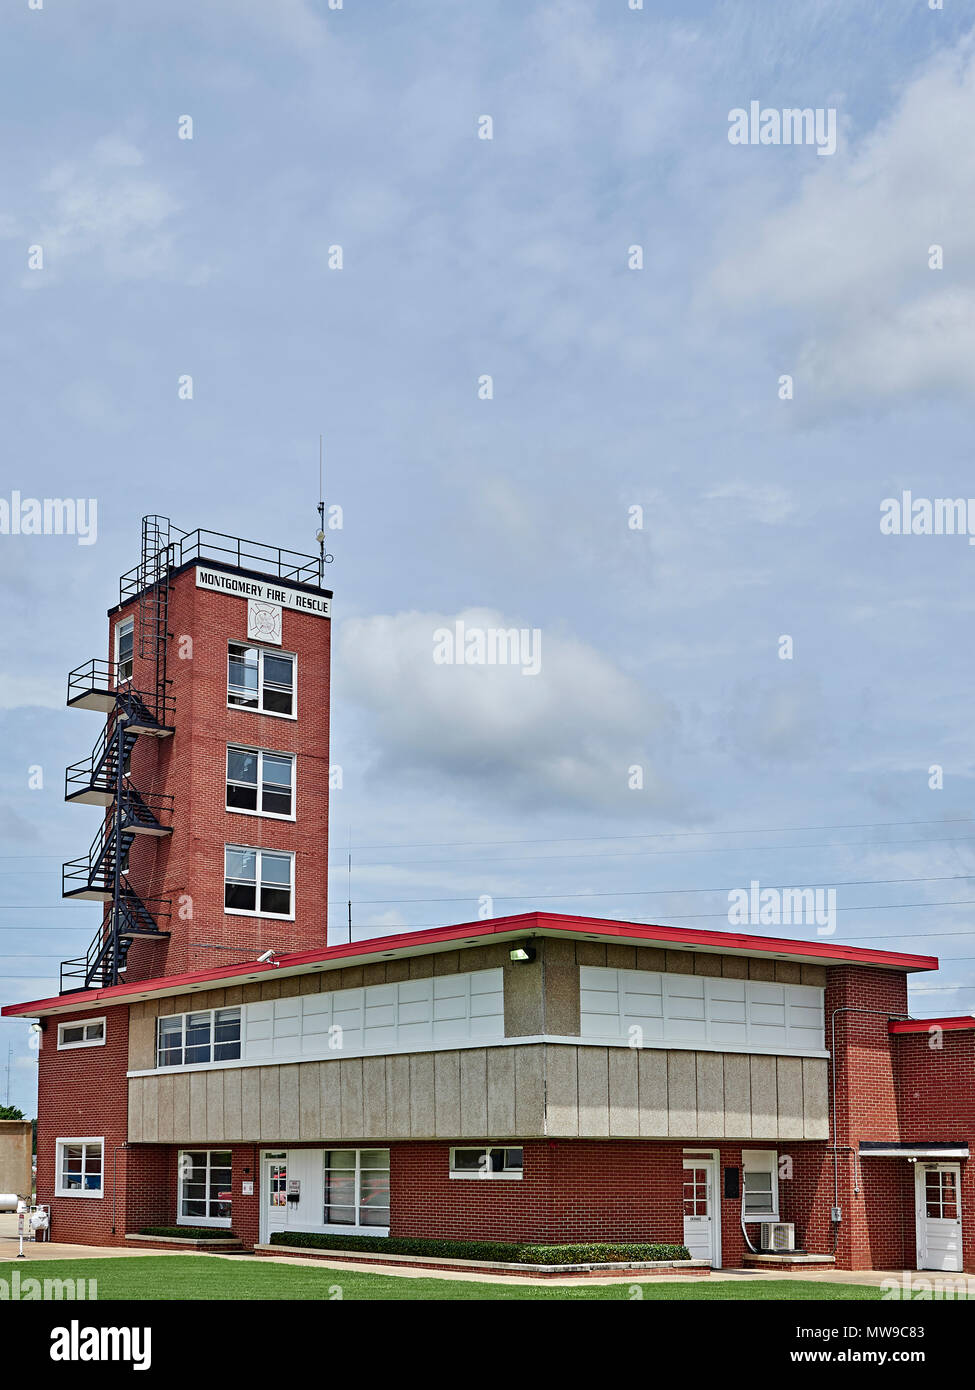 Exterior front of city fire station or fire house with a hose drying tower in Montgomery Alabama, USA. - Stock Image